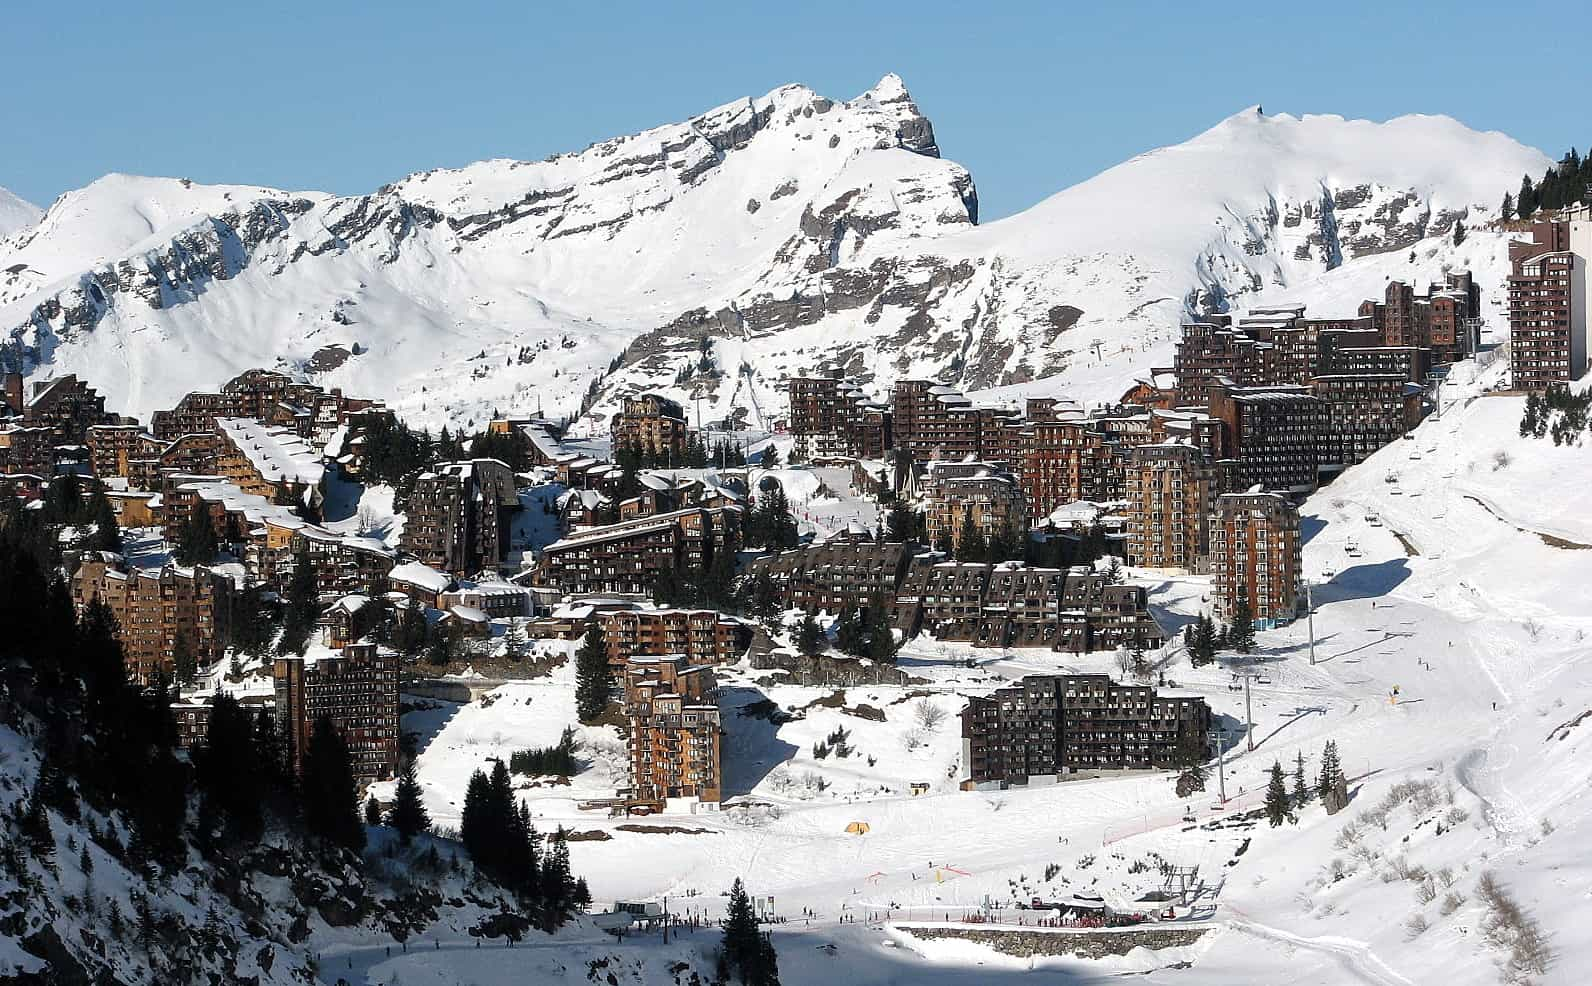 A view of the Avoriaz ski resort accommodation from above